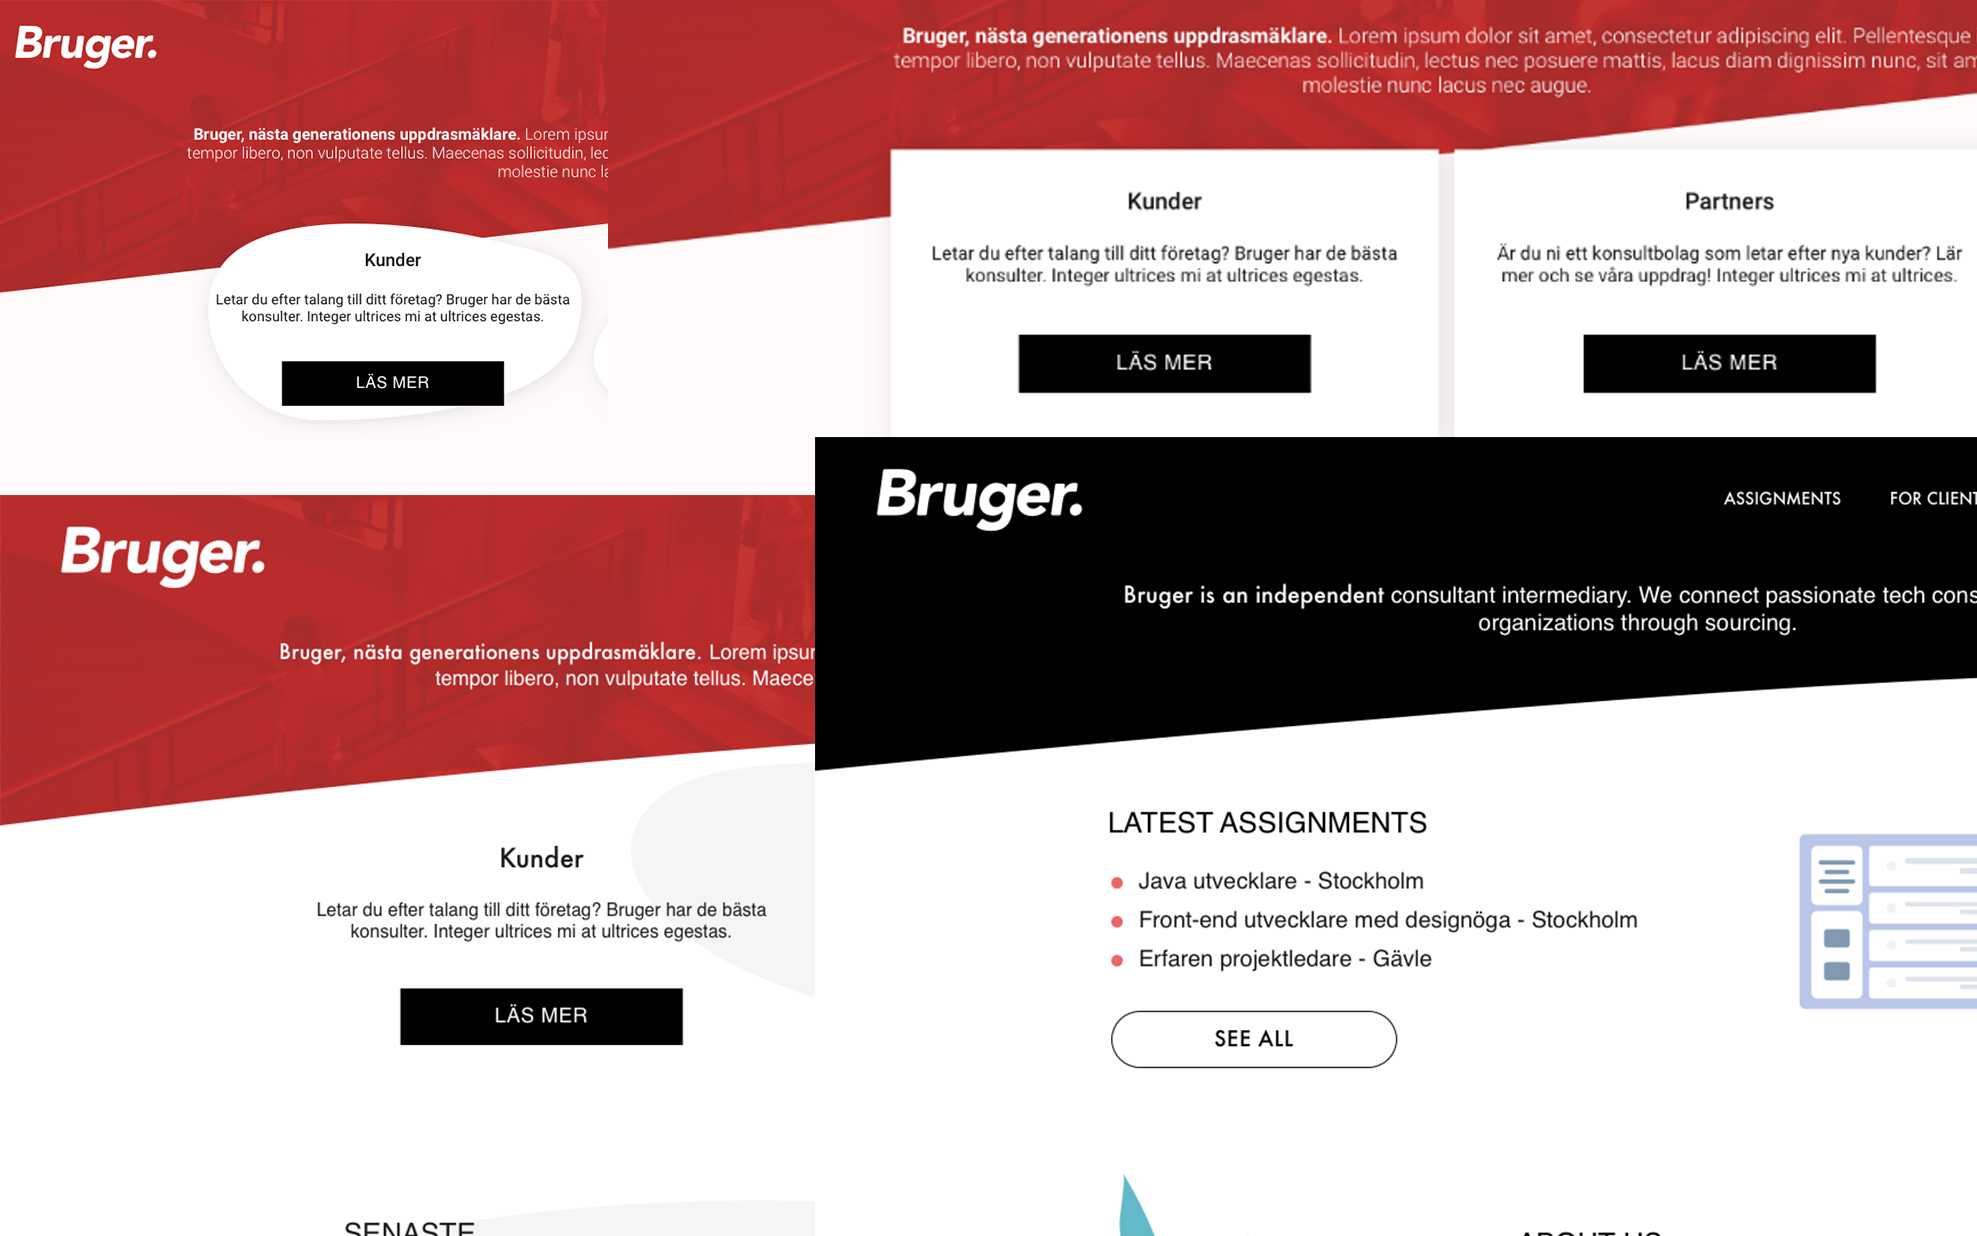 Different variations of the landing page and color schemes.